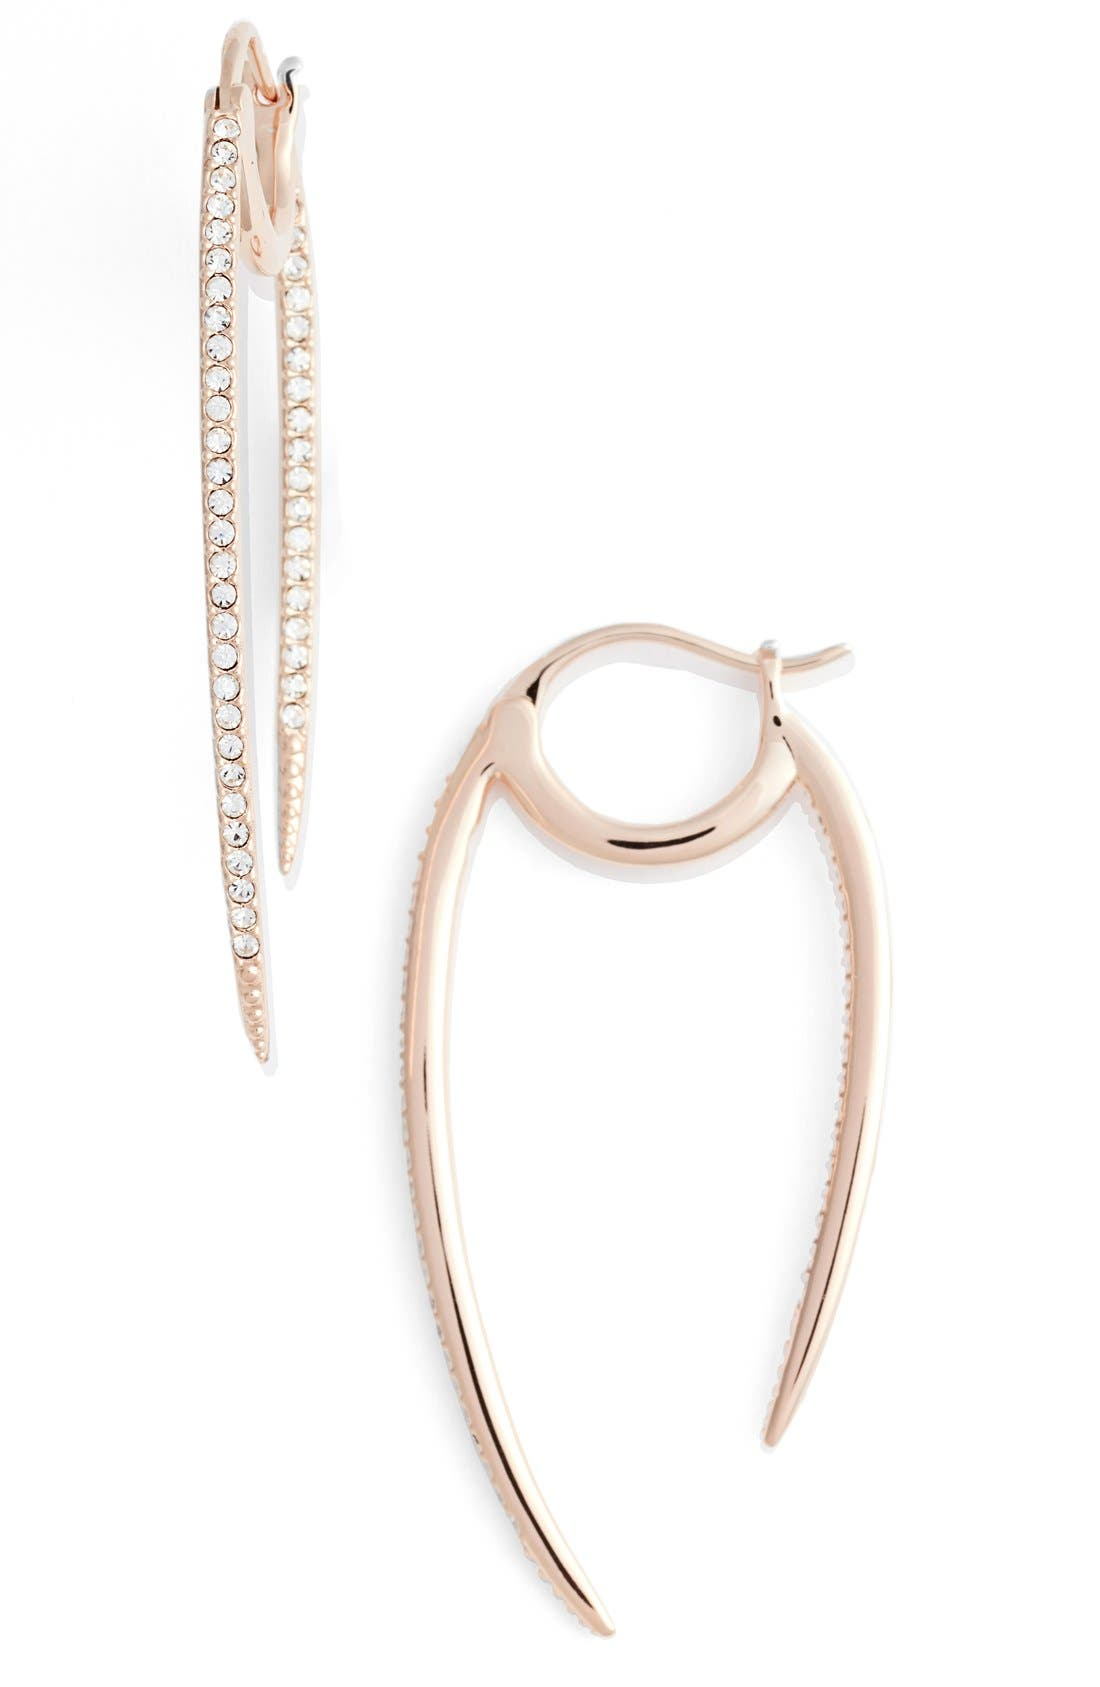 Alternate Image 1 Selected - Nadri 'Crescent' Linear Hoop Earrings